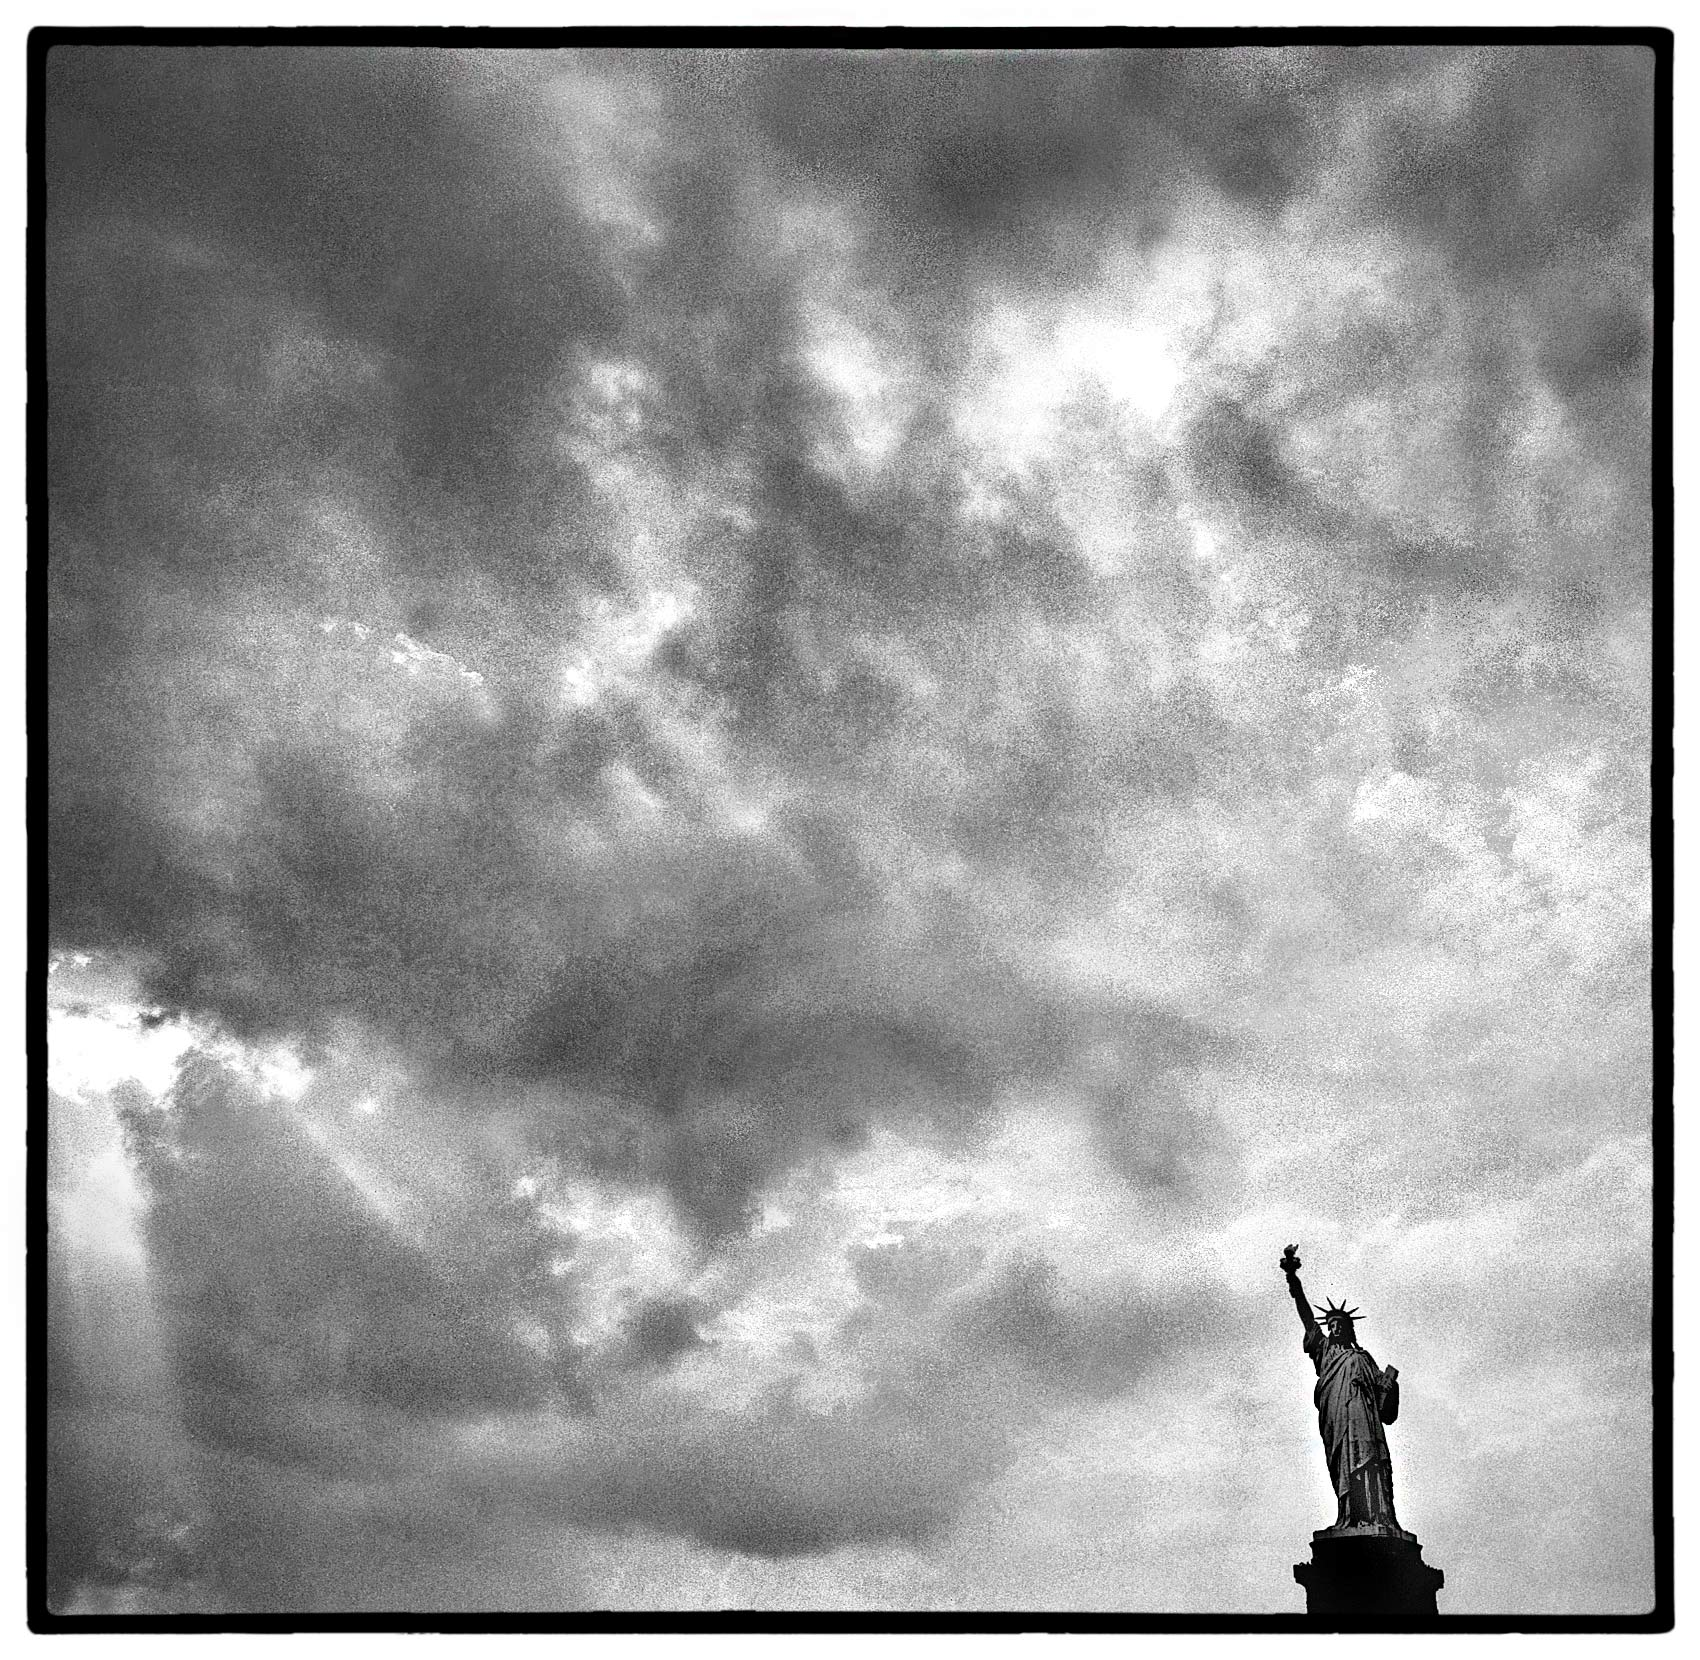 the sun breaks through the clouds over the statue of liberty in new york harbour